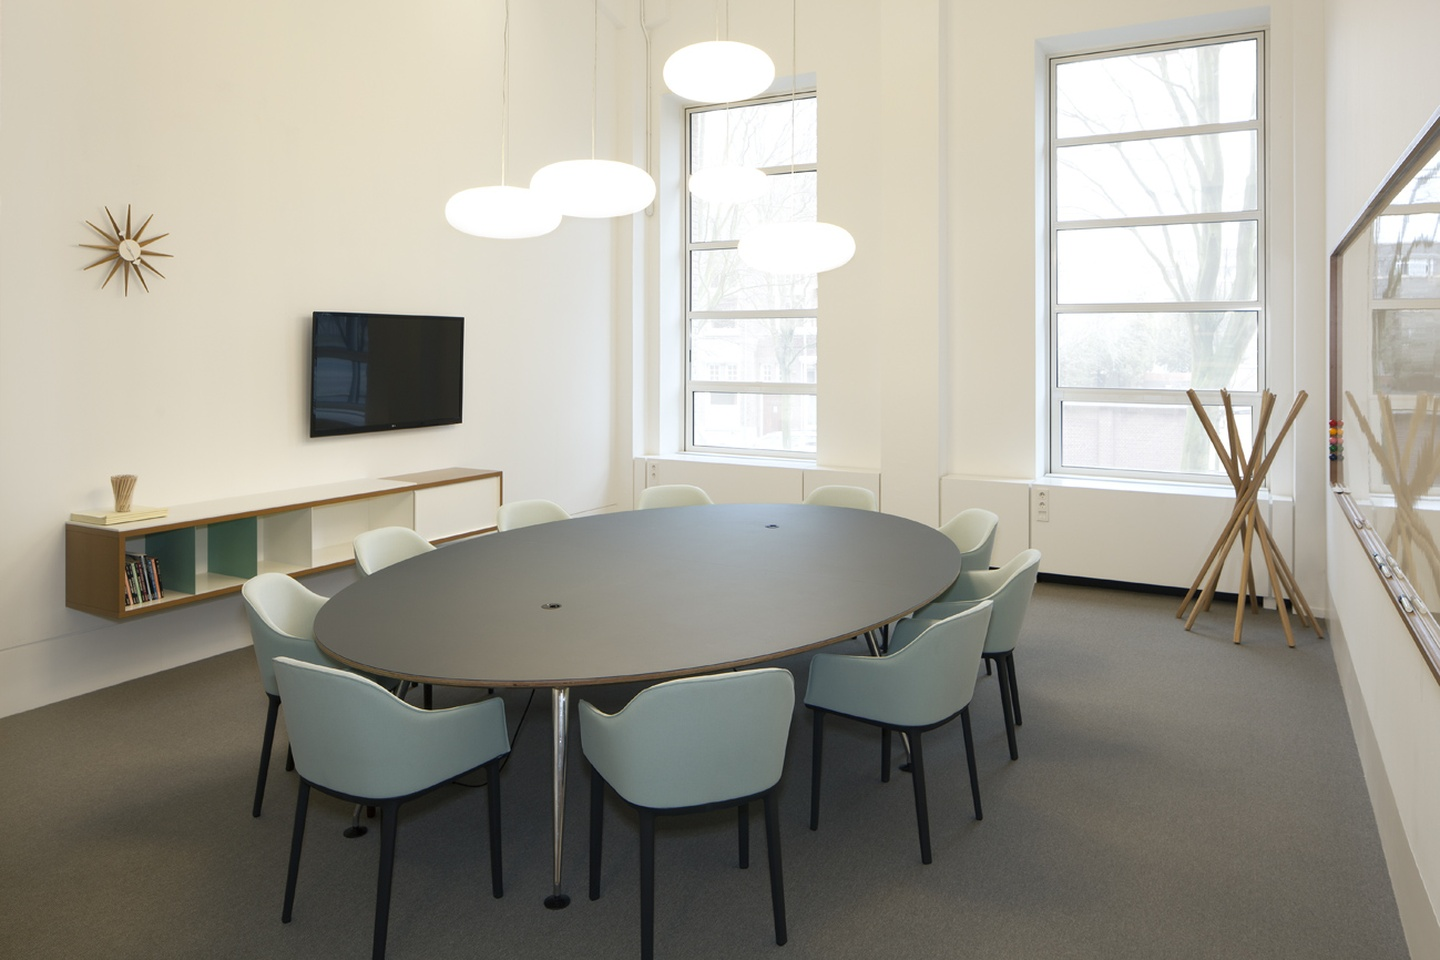 The Hague Train station meeting rooms Meeting room Spaces Rode Olifant - Room 6 image 0